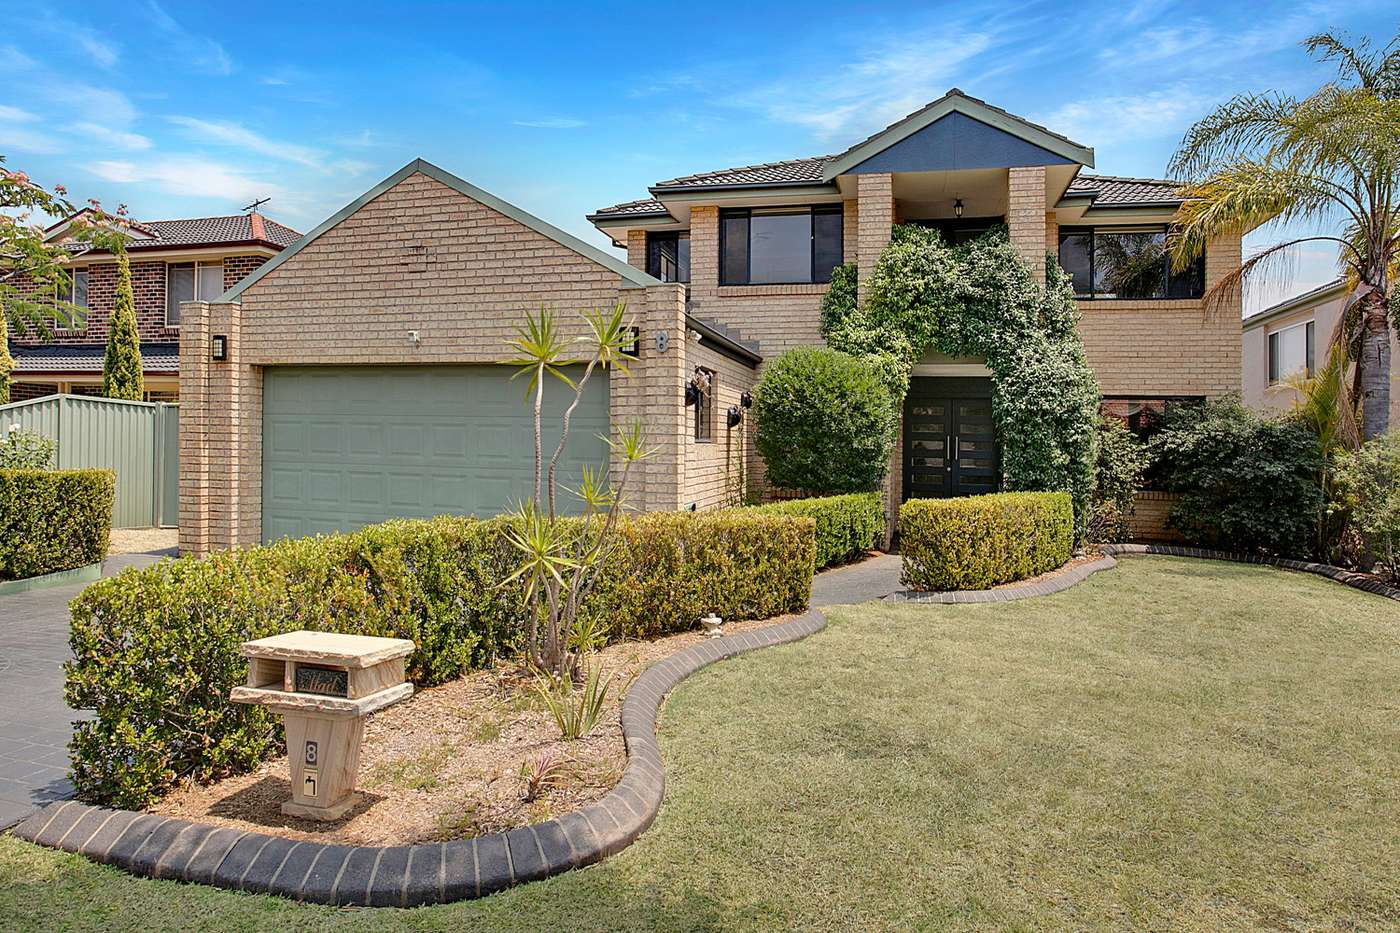 Main view of Homely house listing, 8 Tench Way, West Hoxton, NSW 2171